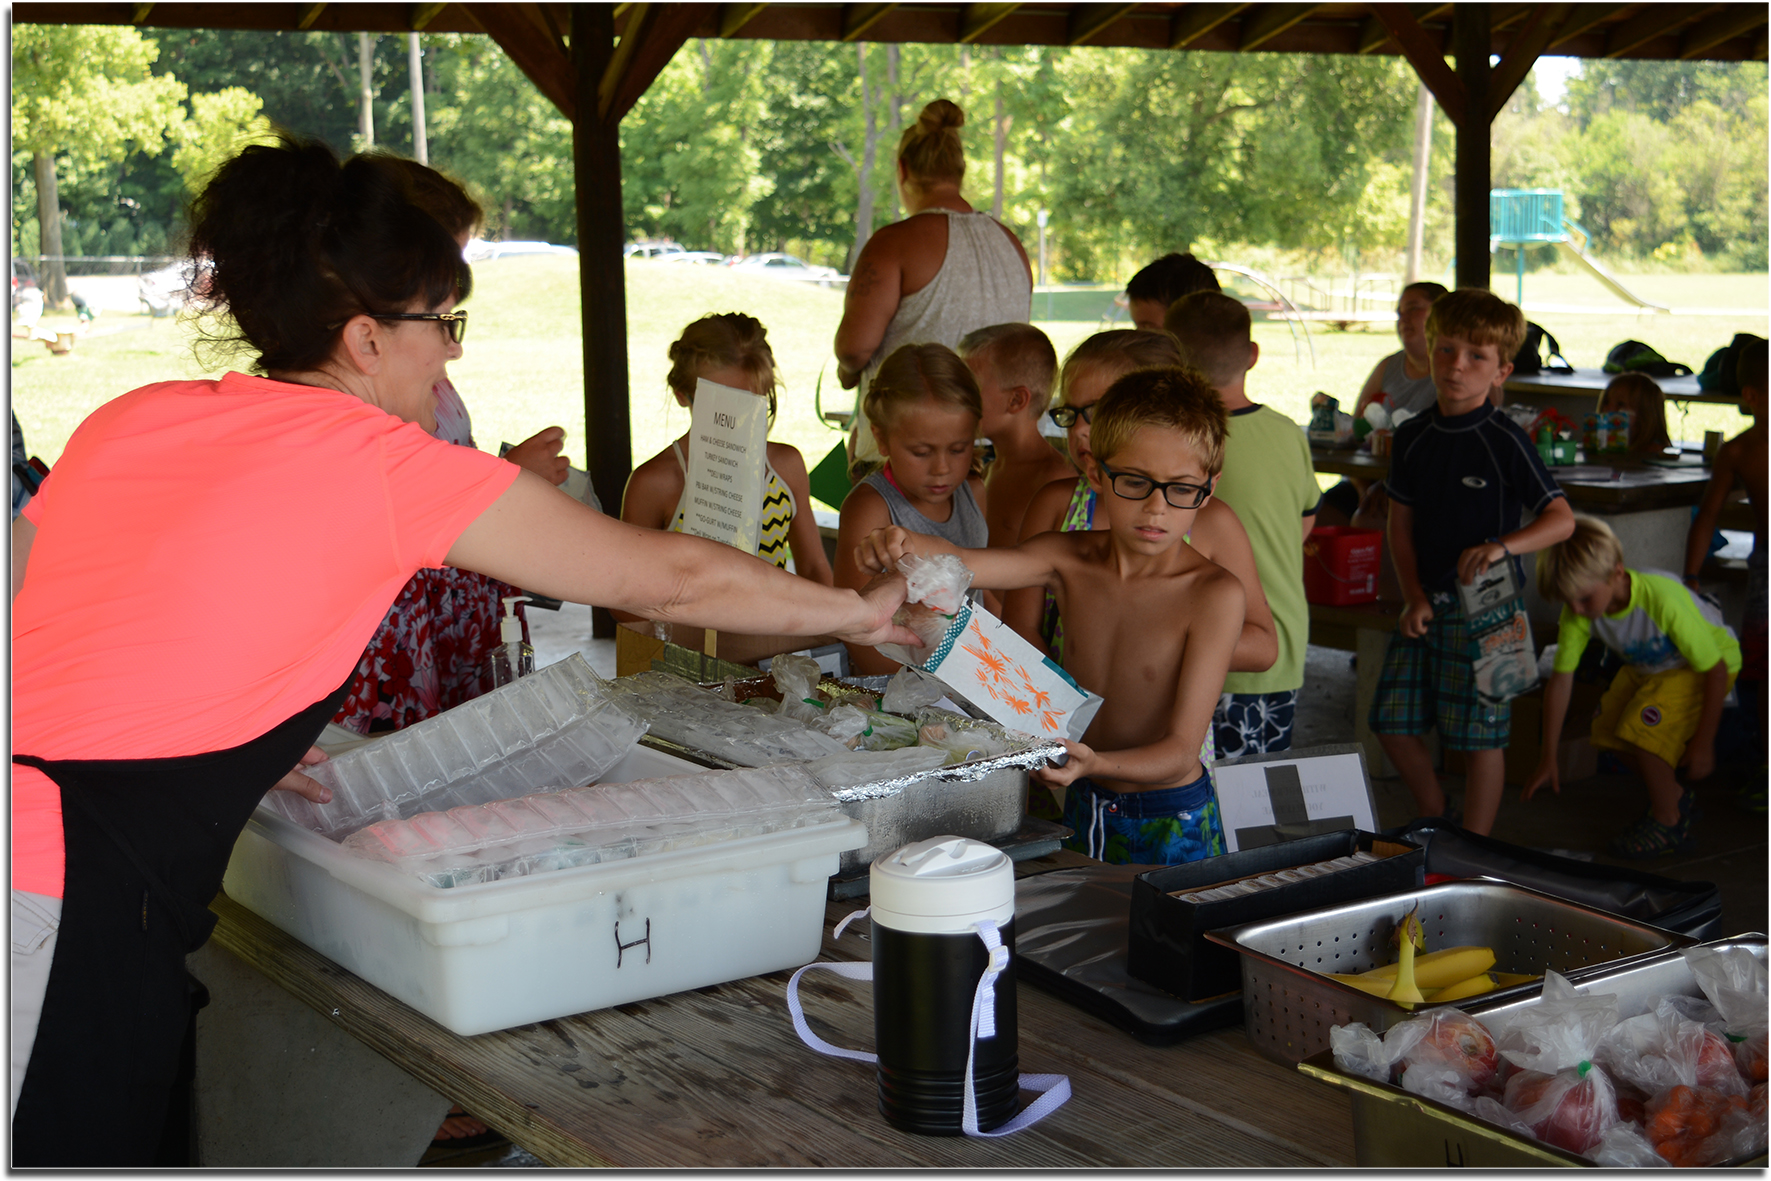 Students receiving their summer lunch at Hiawatha Park.